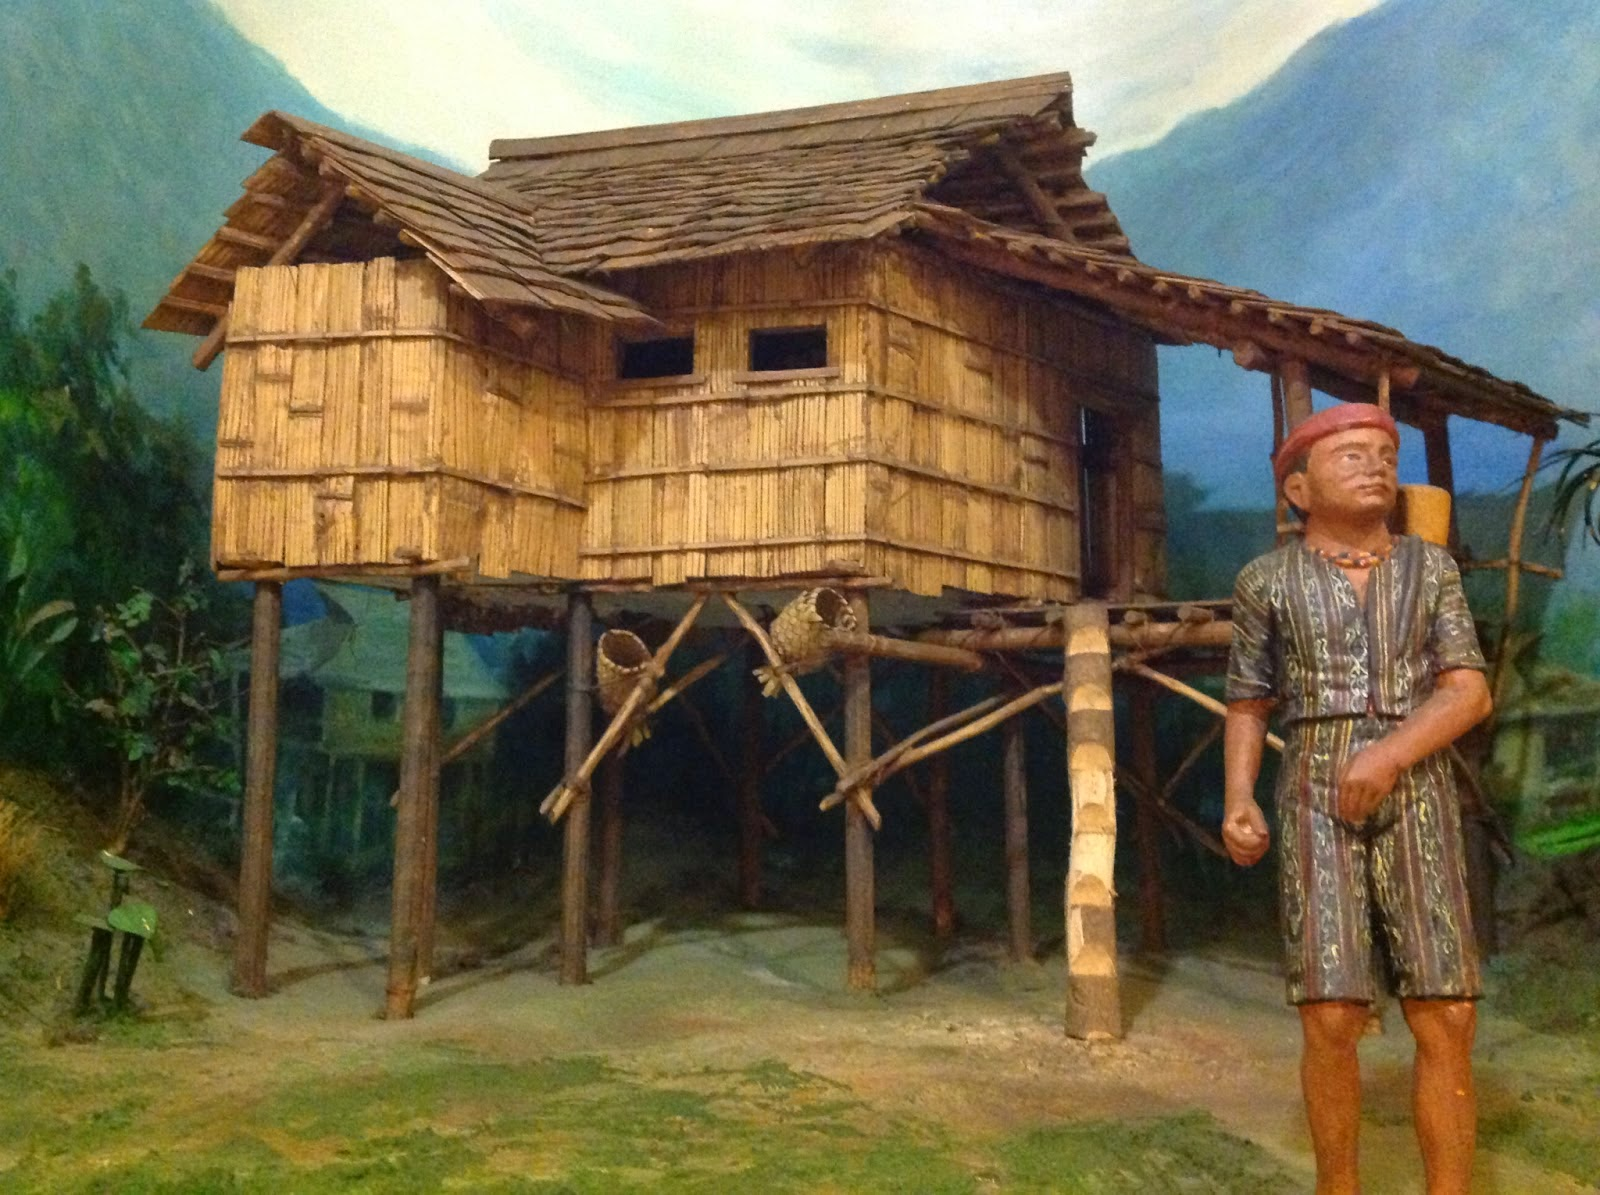 The nipa hut